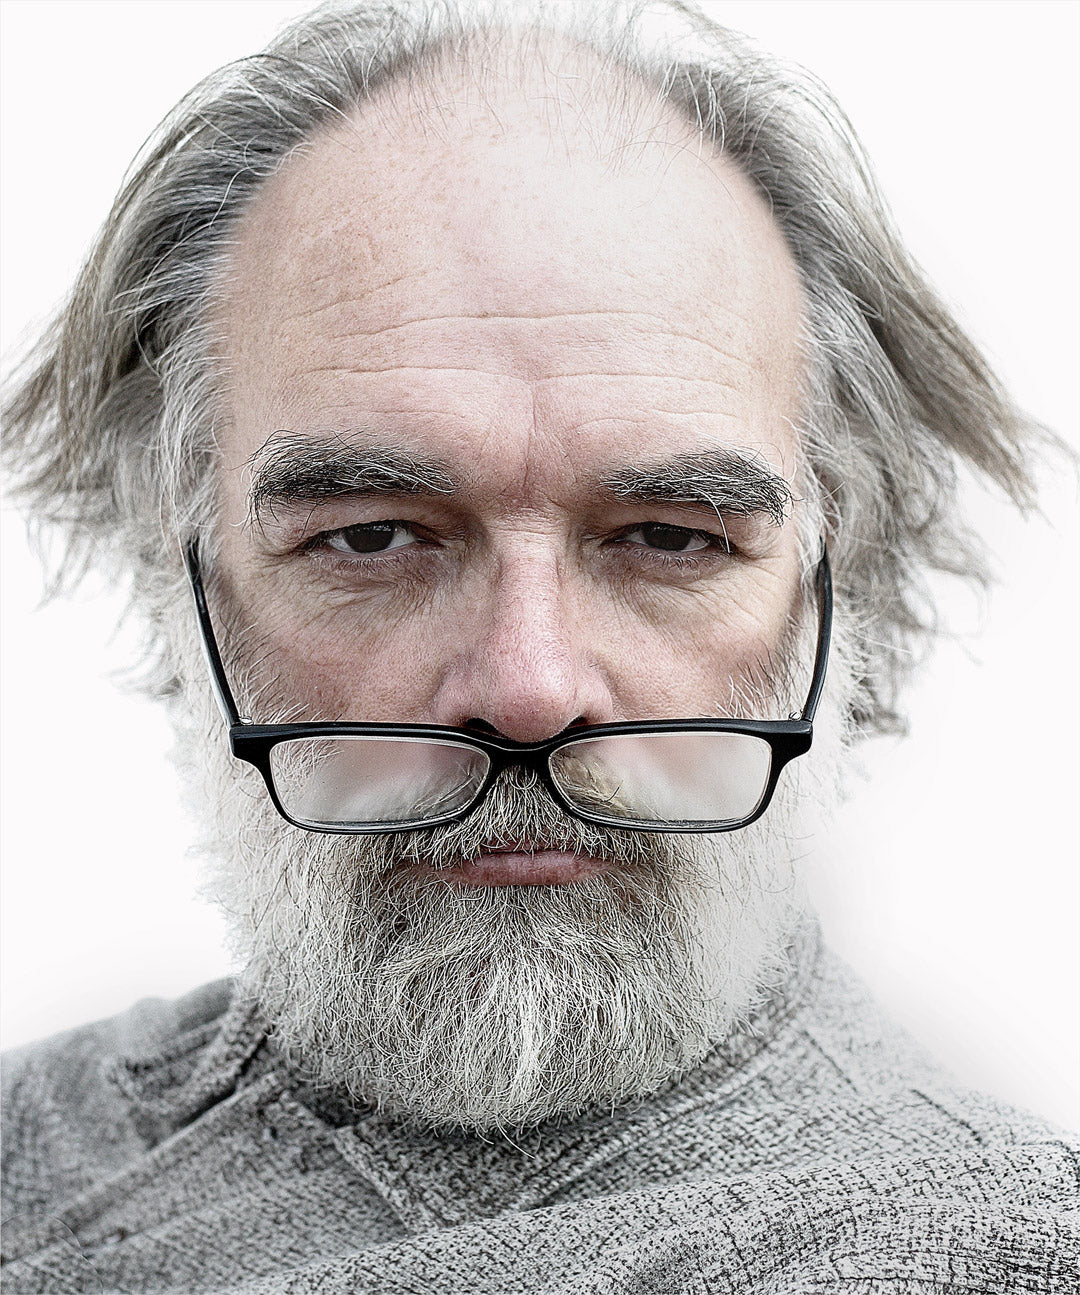 Serious looking man with long grey hair with his glasses humorously hanging off the end of his nose